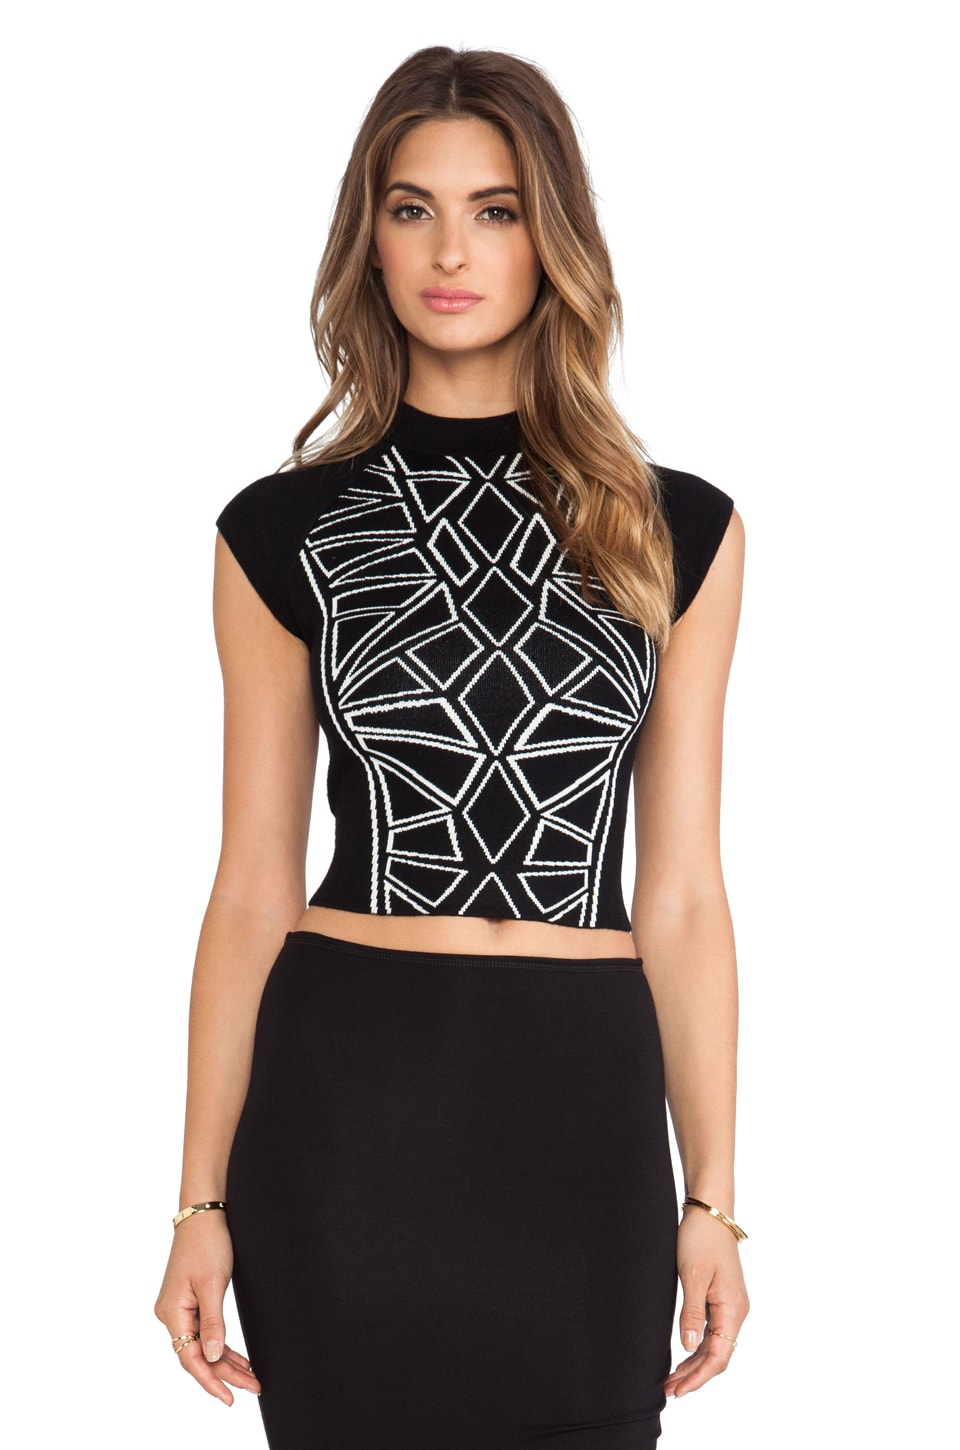 bless'ed are the meek Fractal Top in Black & Ivory